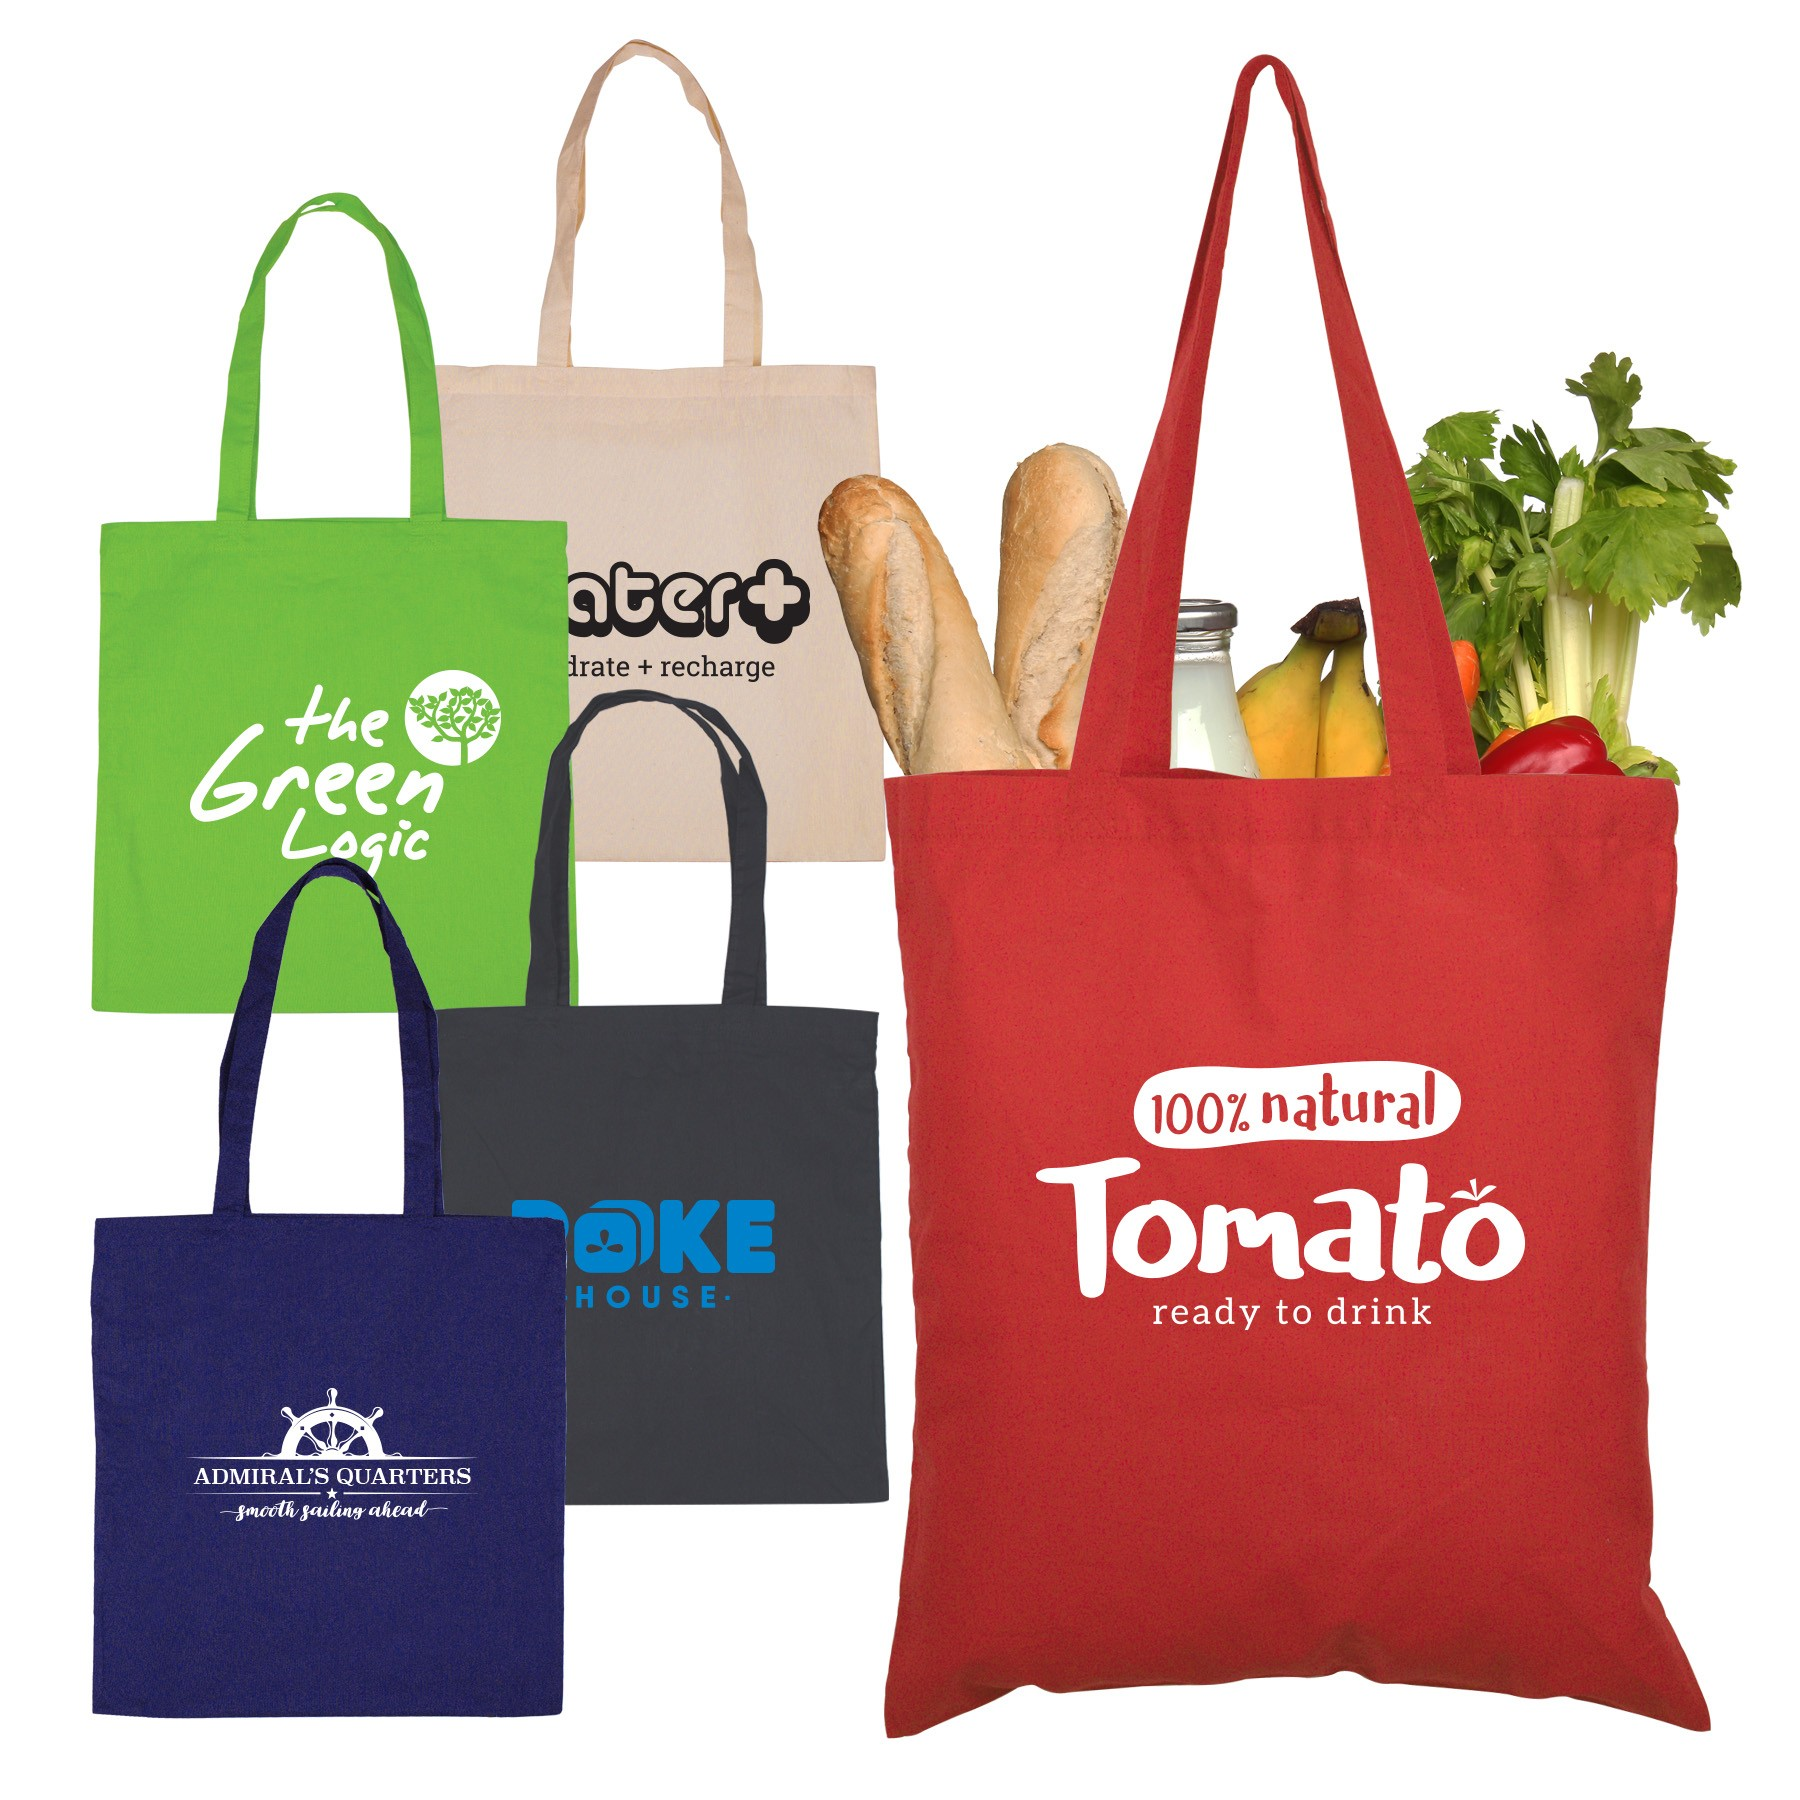 2019 Quick Seller Quest - Cotton Tote Bag